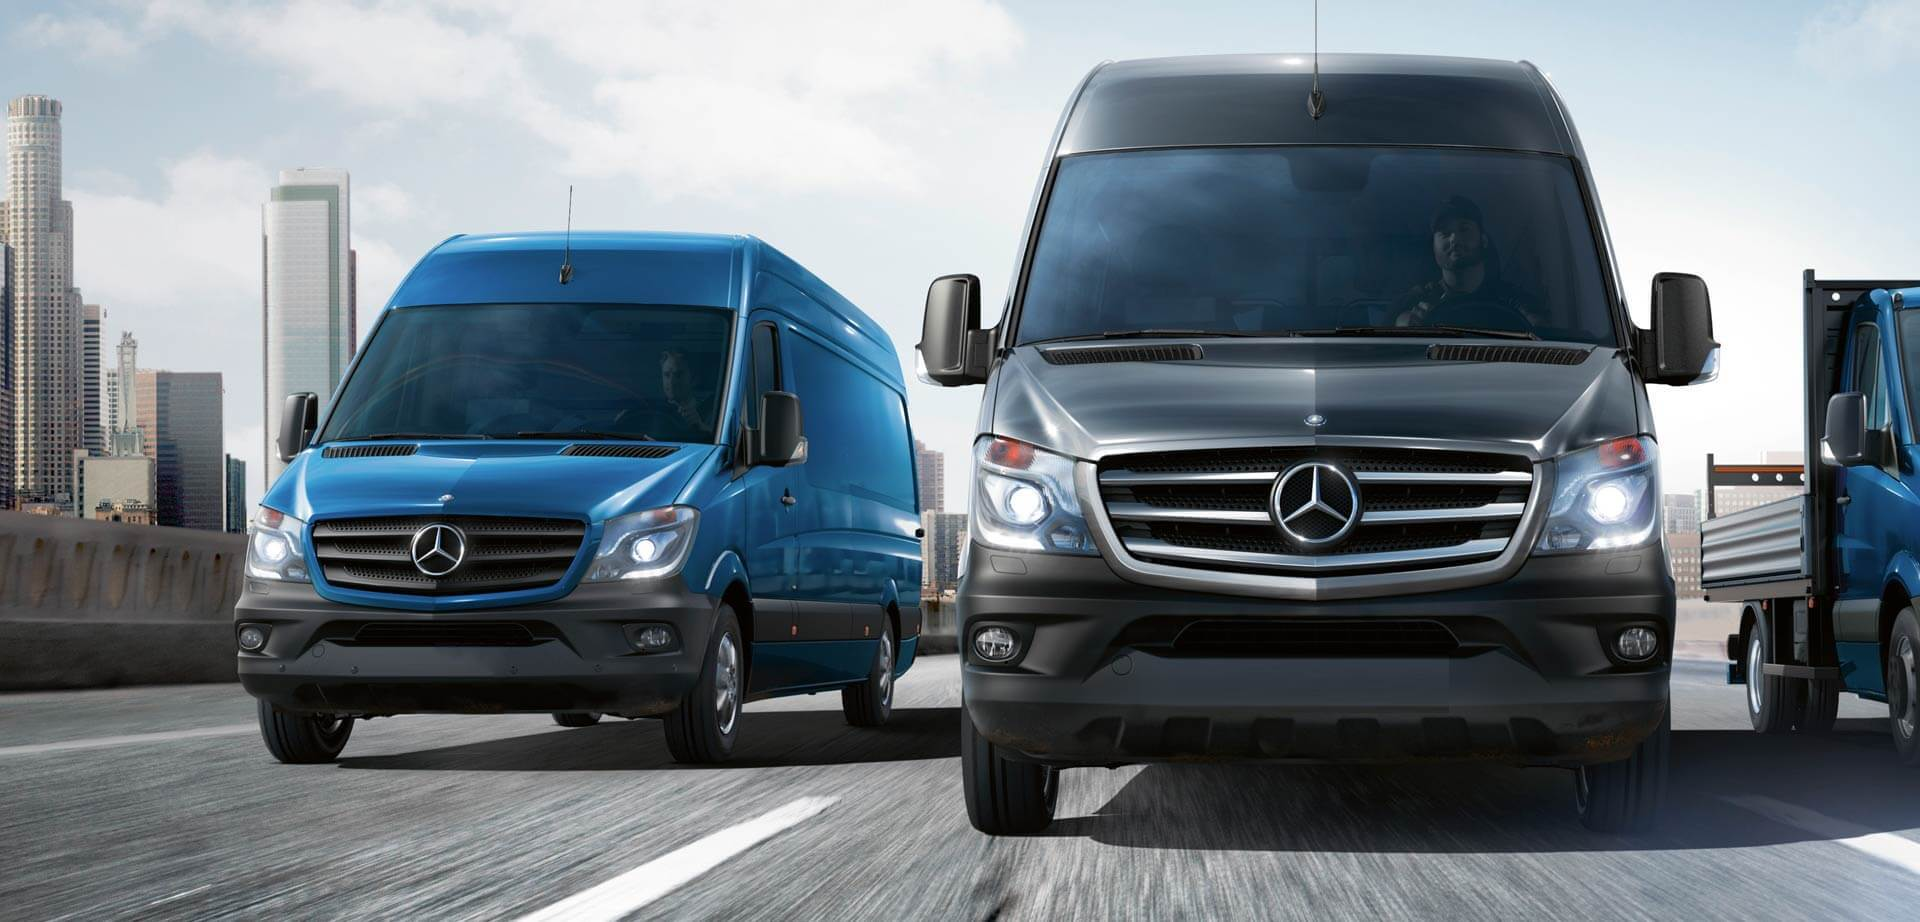 Mercedes-Benz of Arrowhead Sprinter